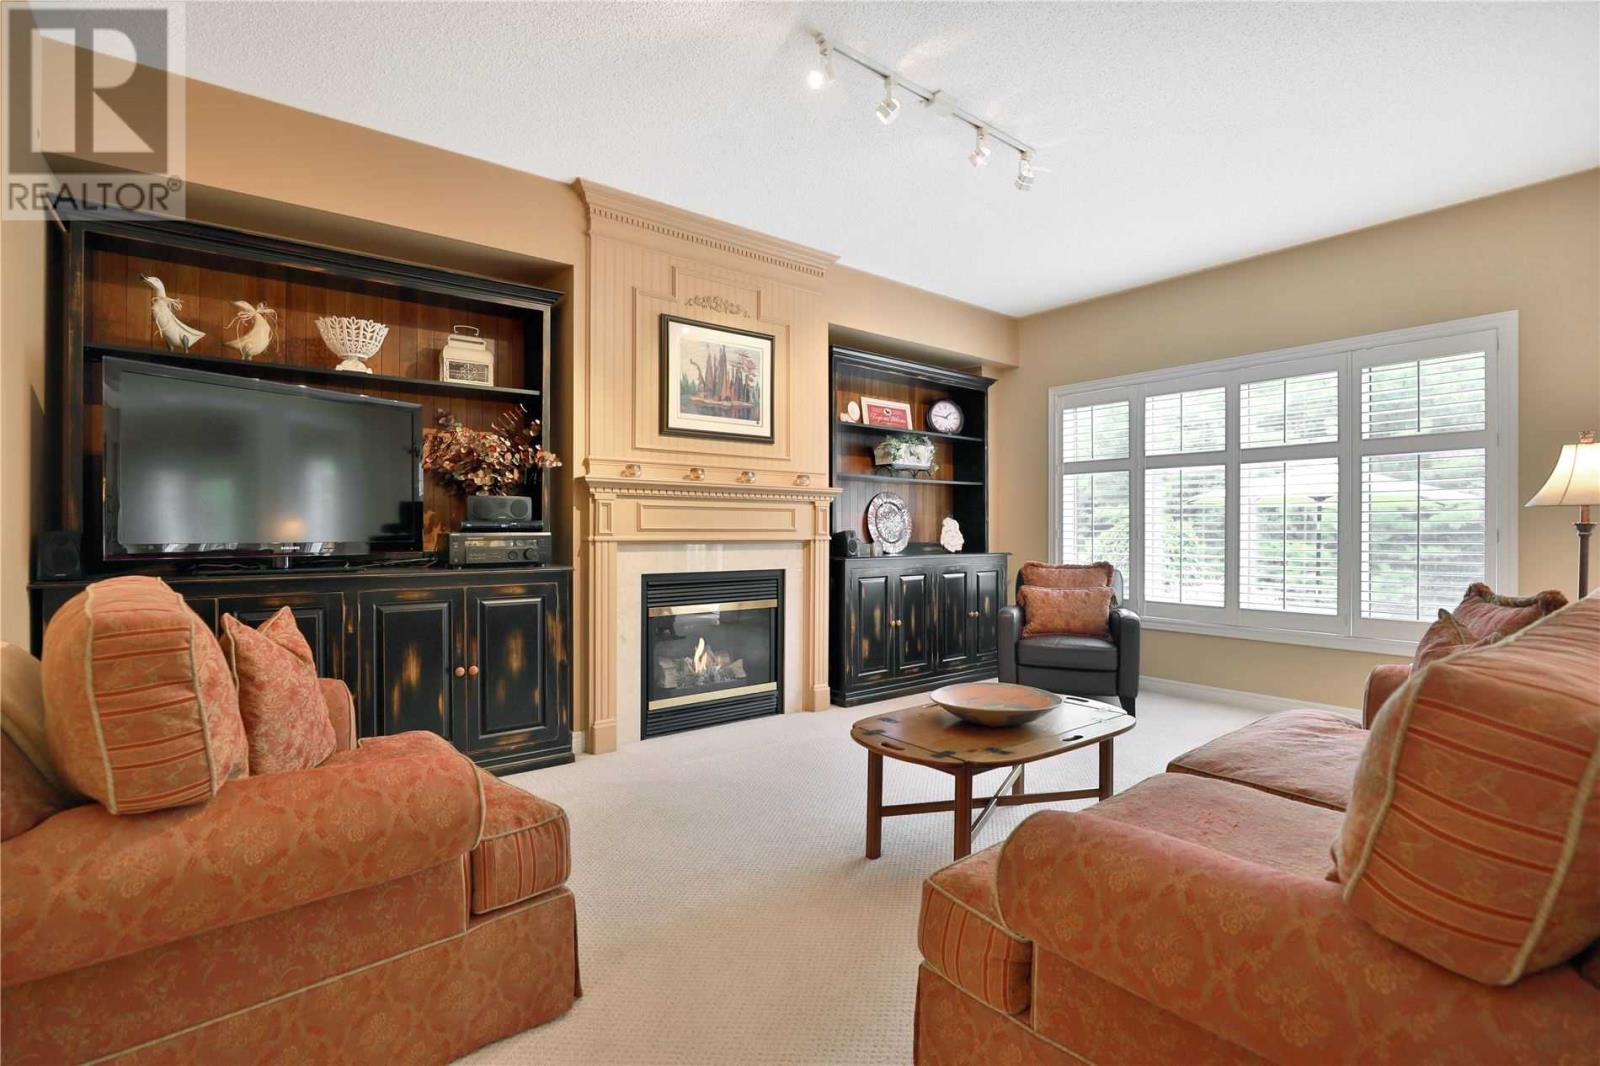 2444 Valley Forest Way, Oakville, Ontario  L6H 6W9 - Photo 6 - W4661371